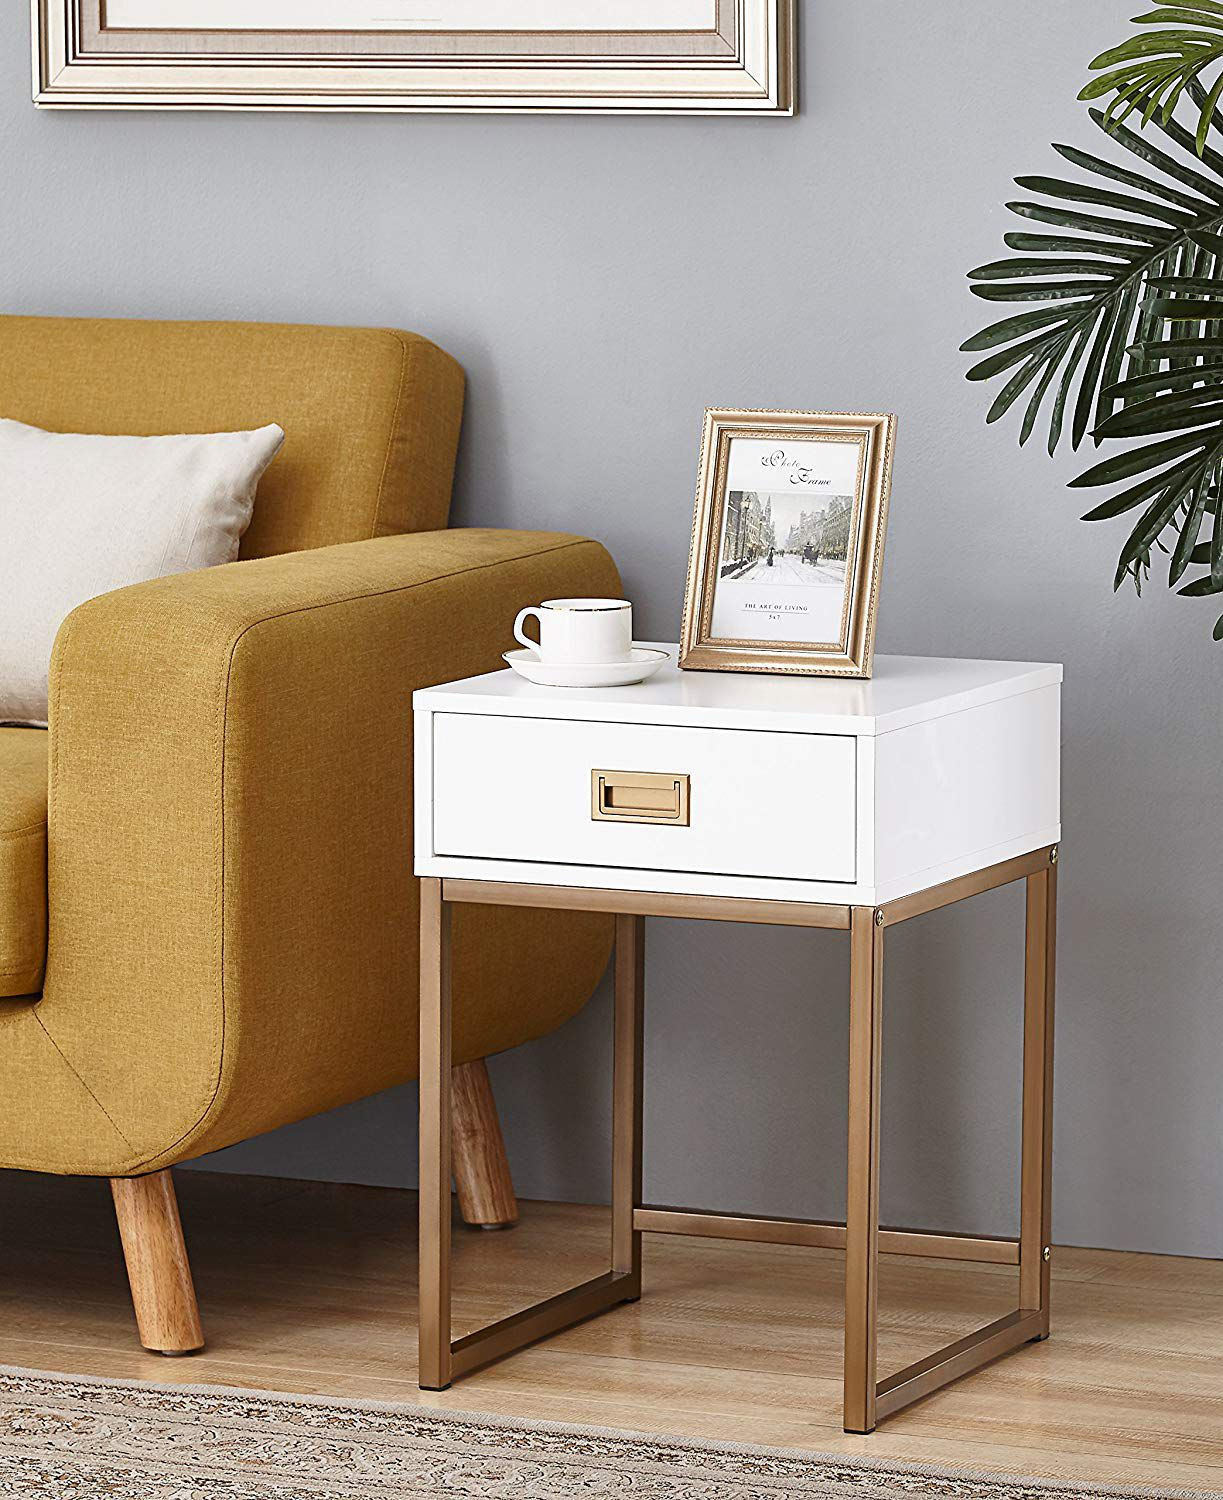 modern nightstands for every bedroom style chic bedside tables tachuri accent table target threshold mosaic short console cherry wood corner drum throne seat top white and gold